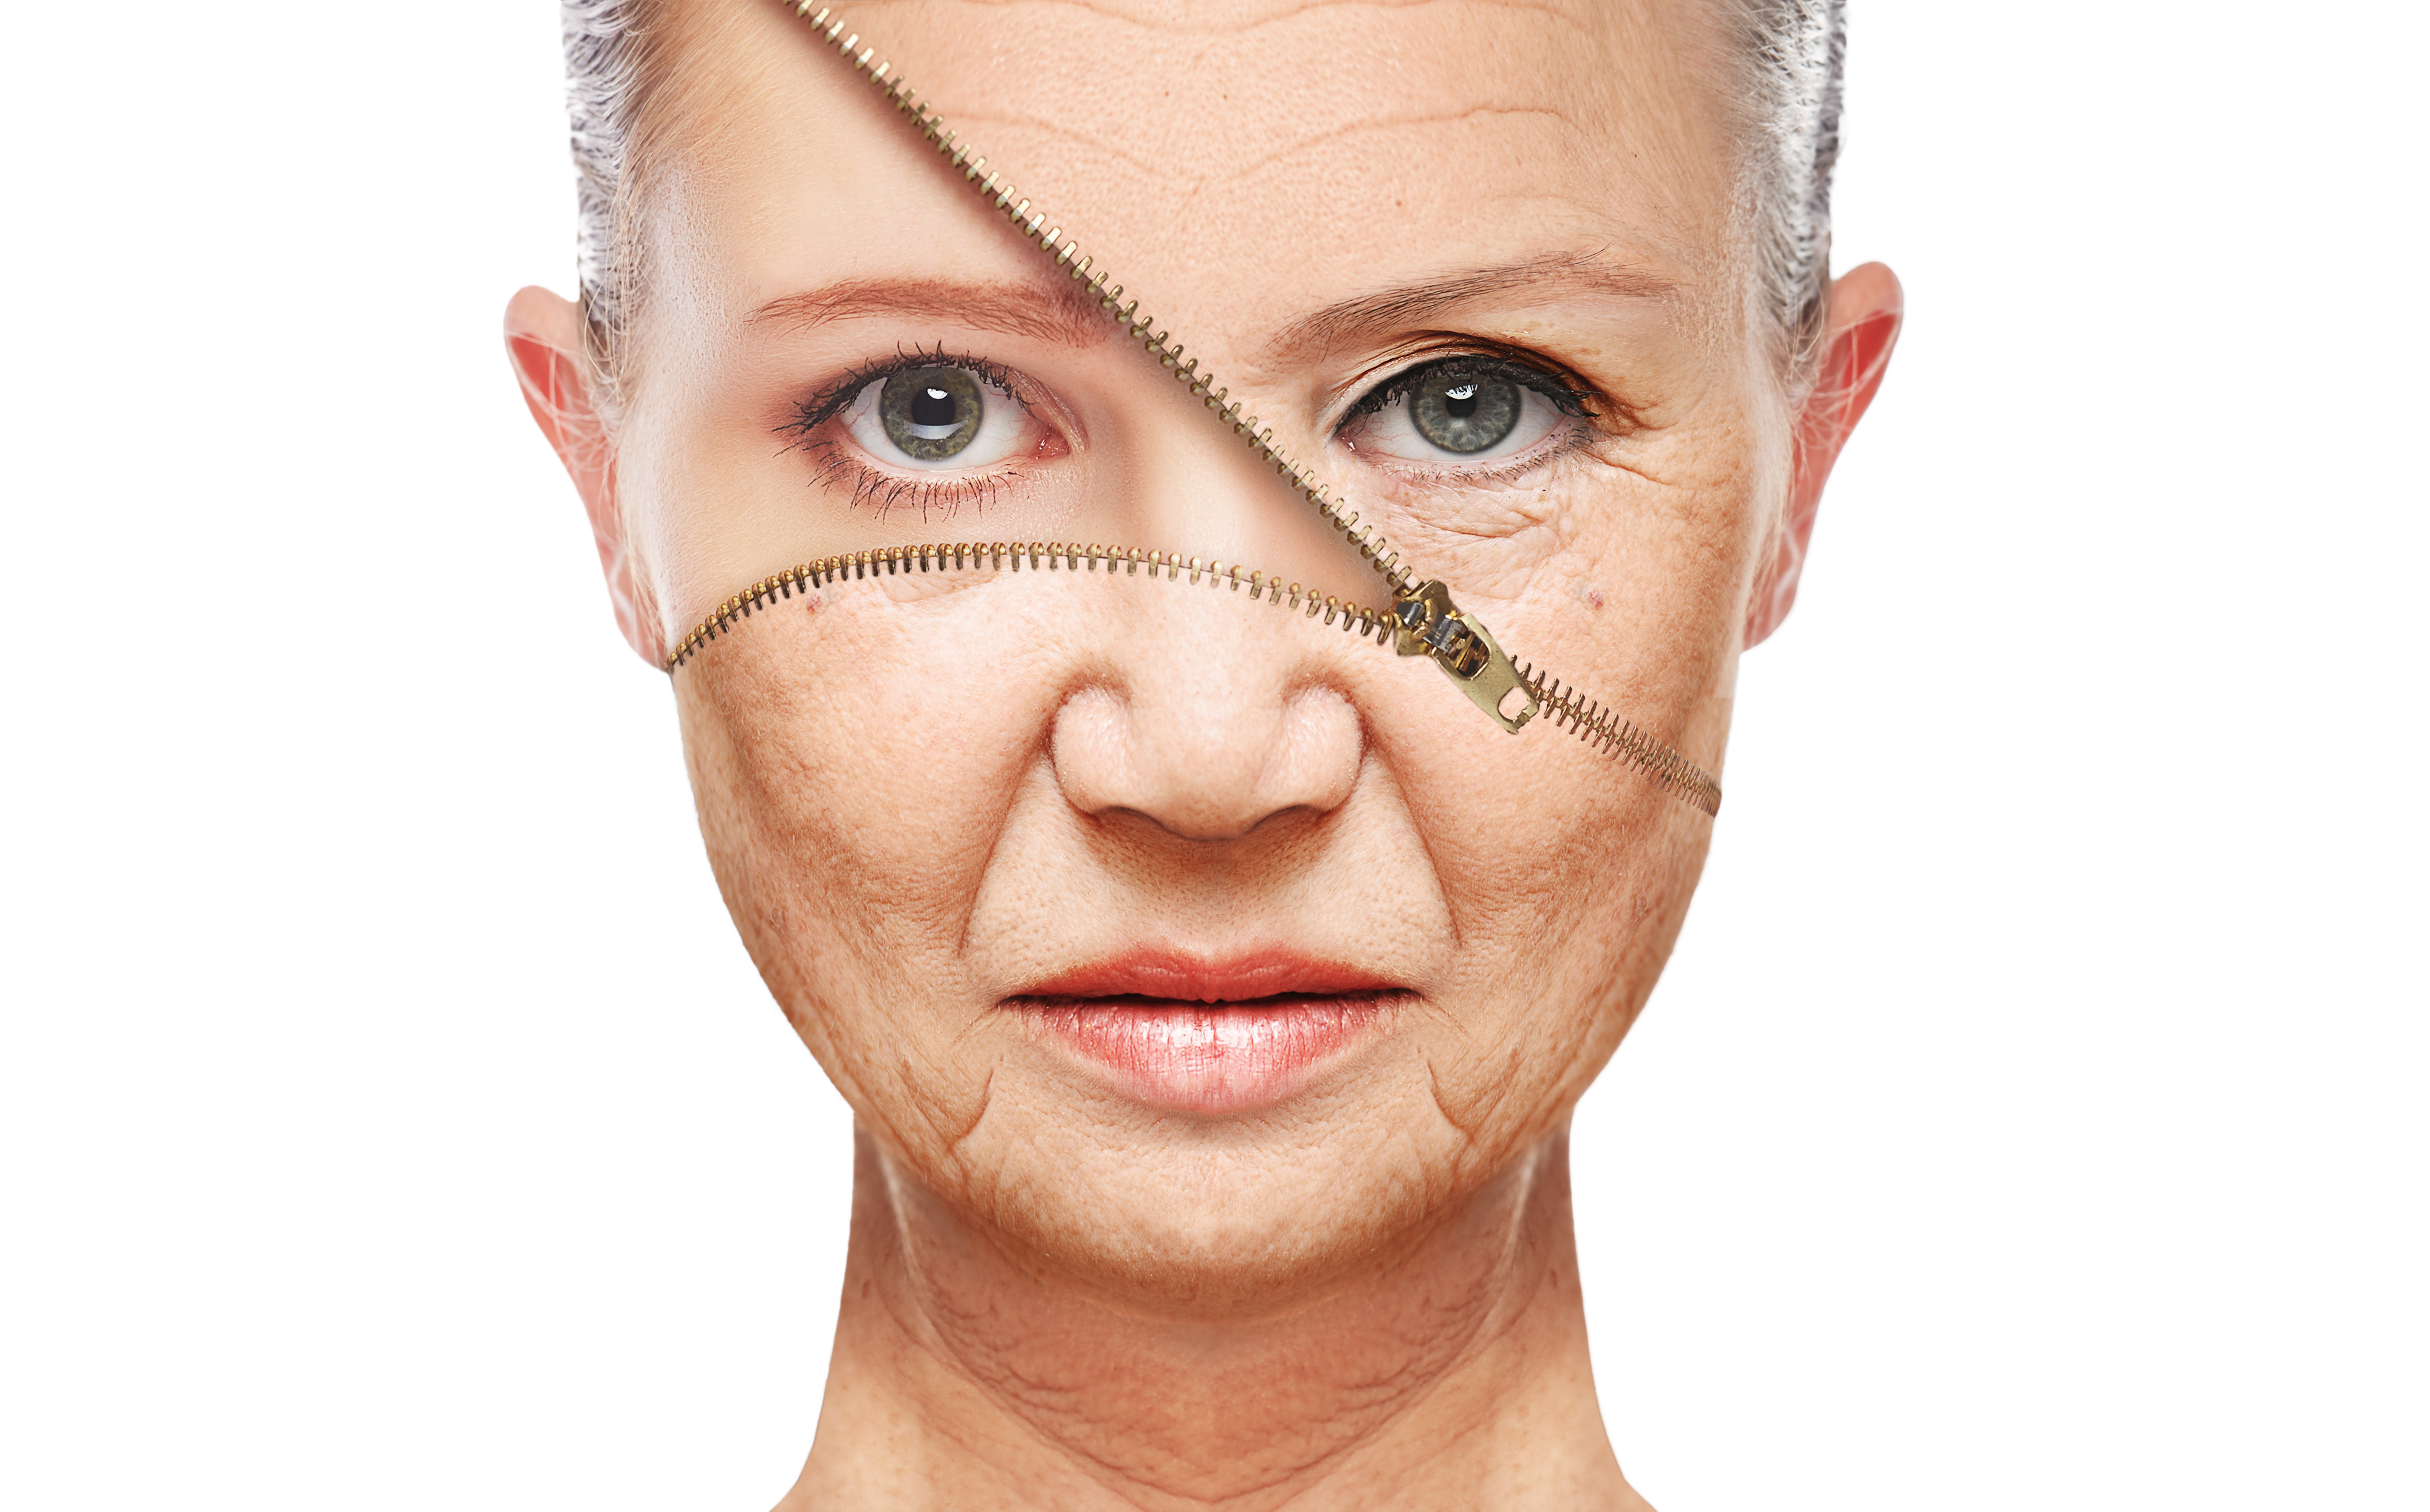 Conventional Anti Aging Treatments Vs Stem Cell Treatment